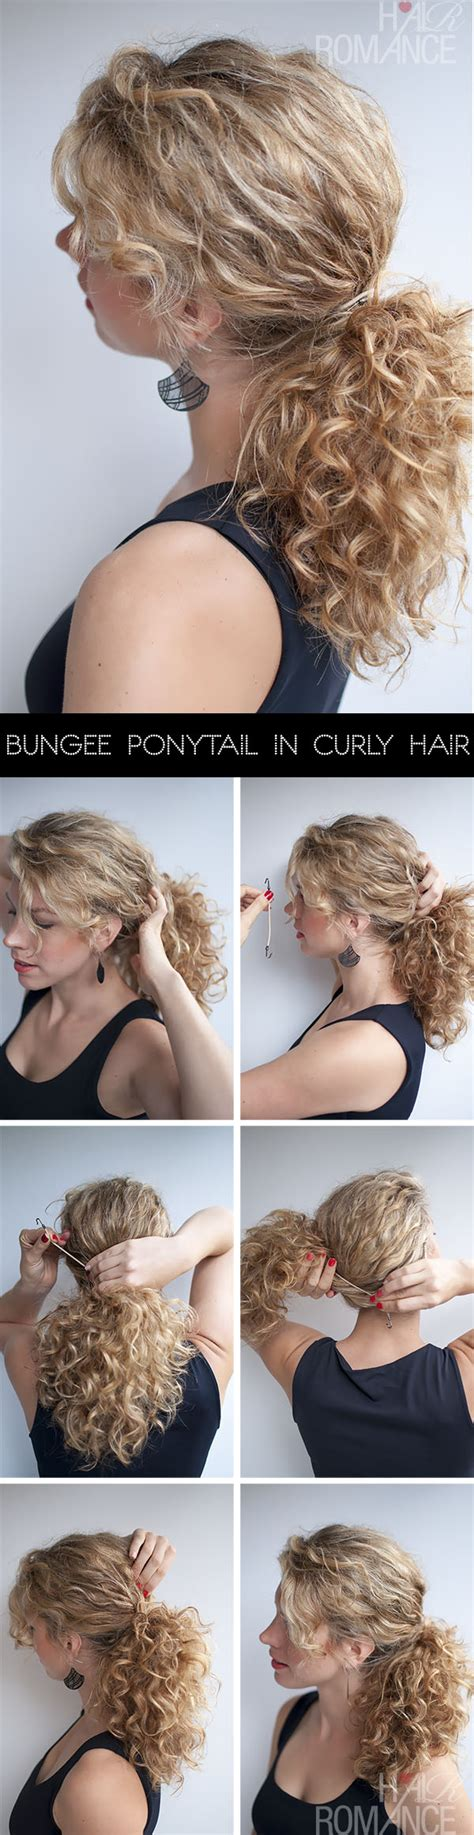 dyt curly hair tutorial curly hairstyle tutorial the curly ponytail hair romance